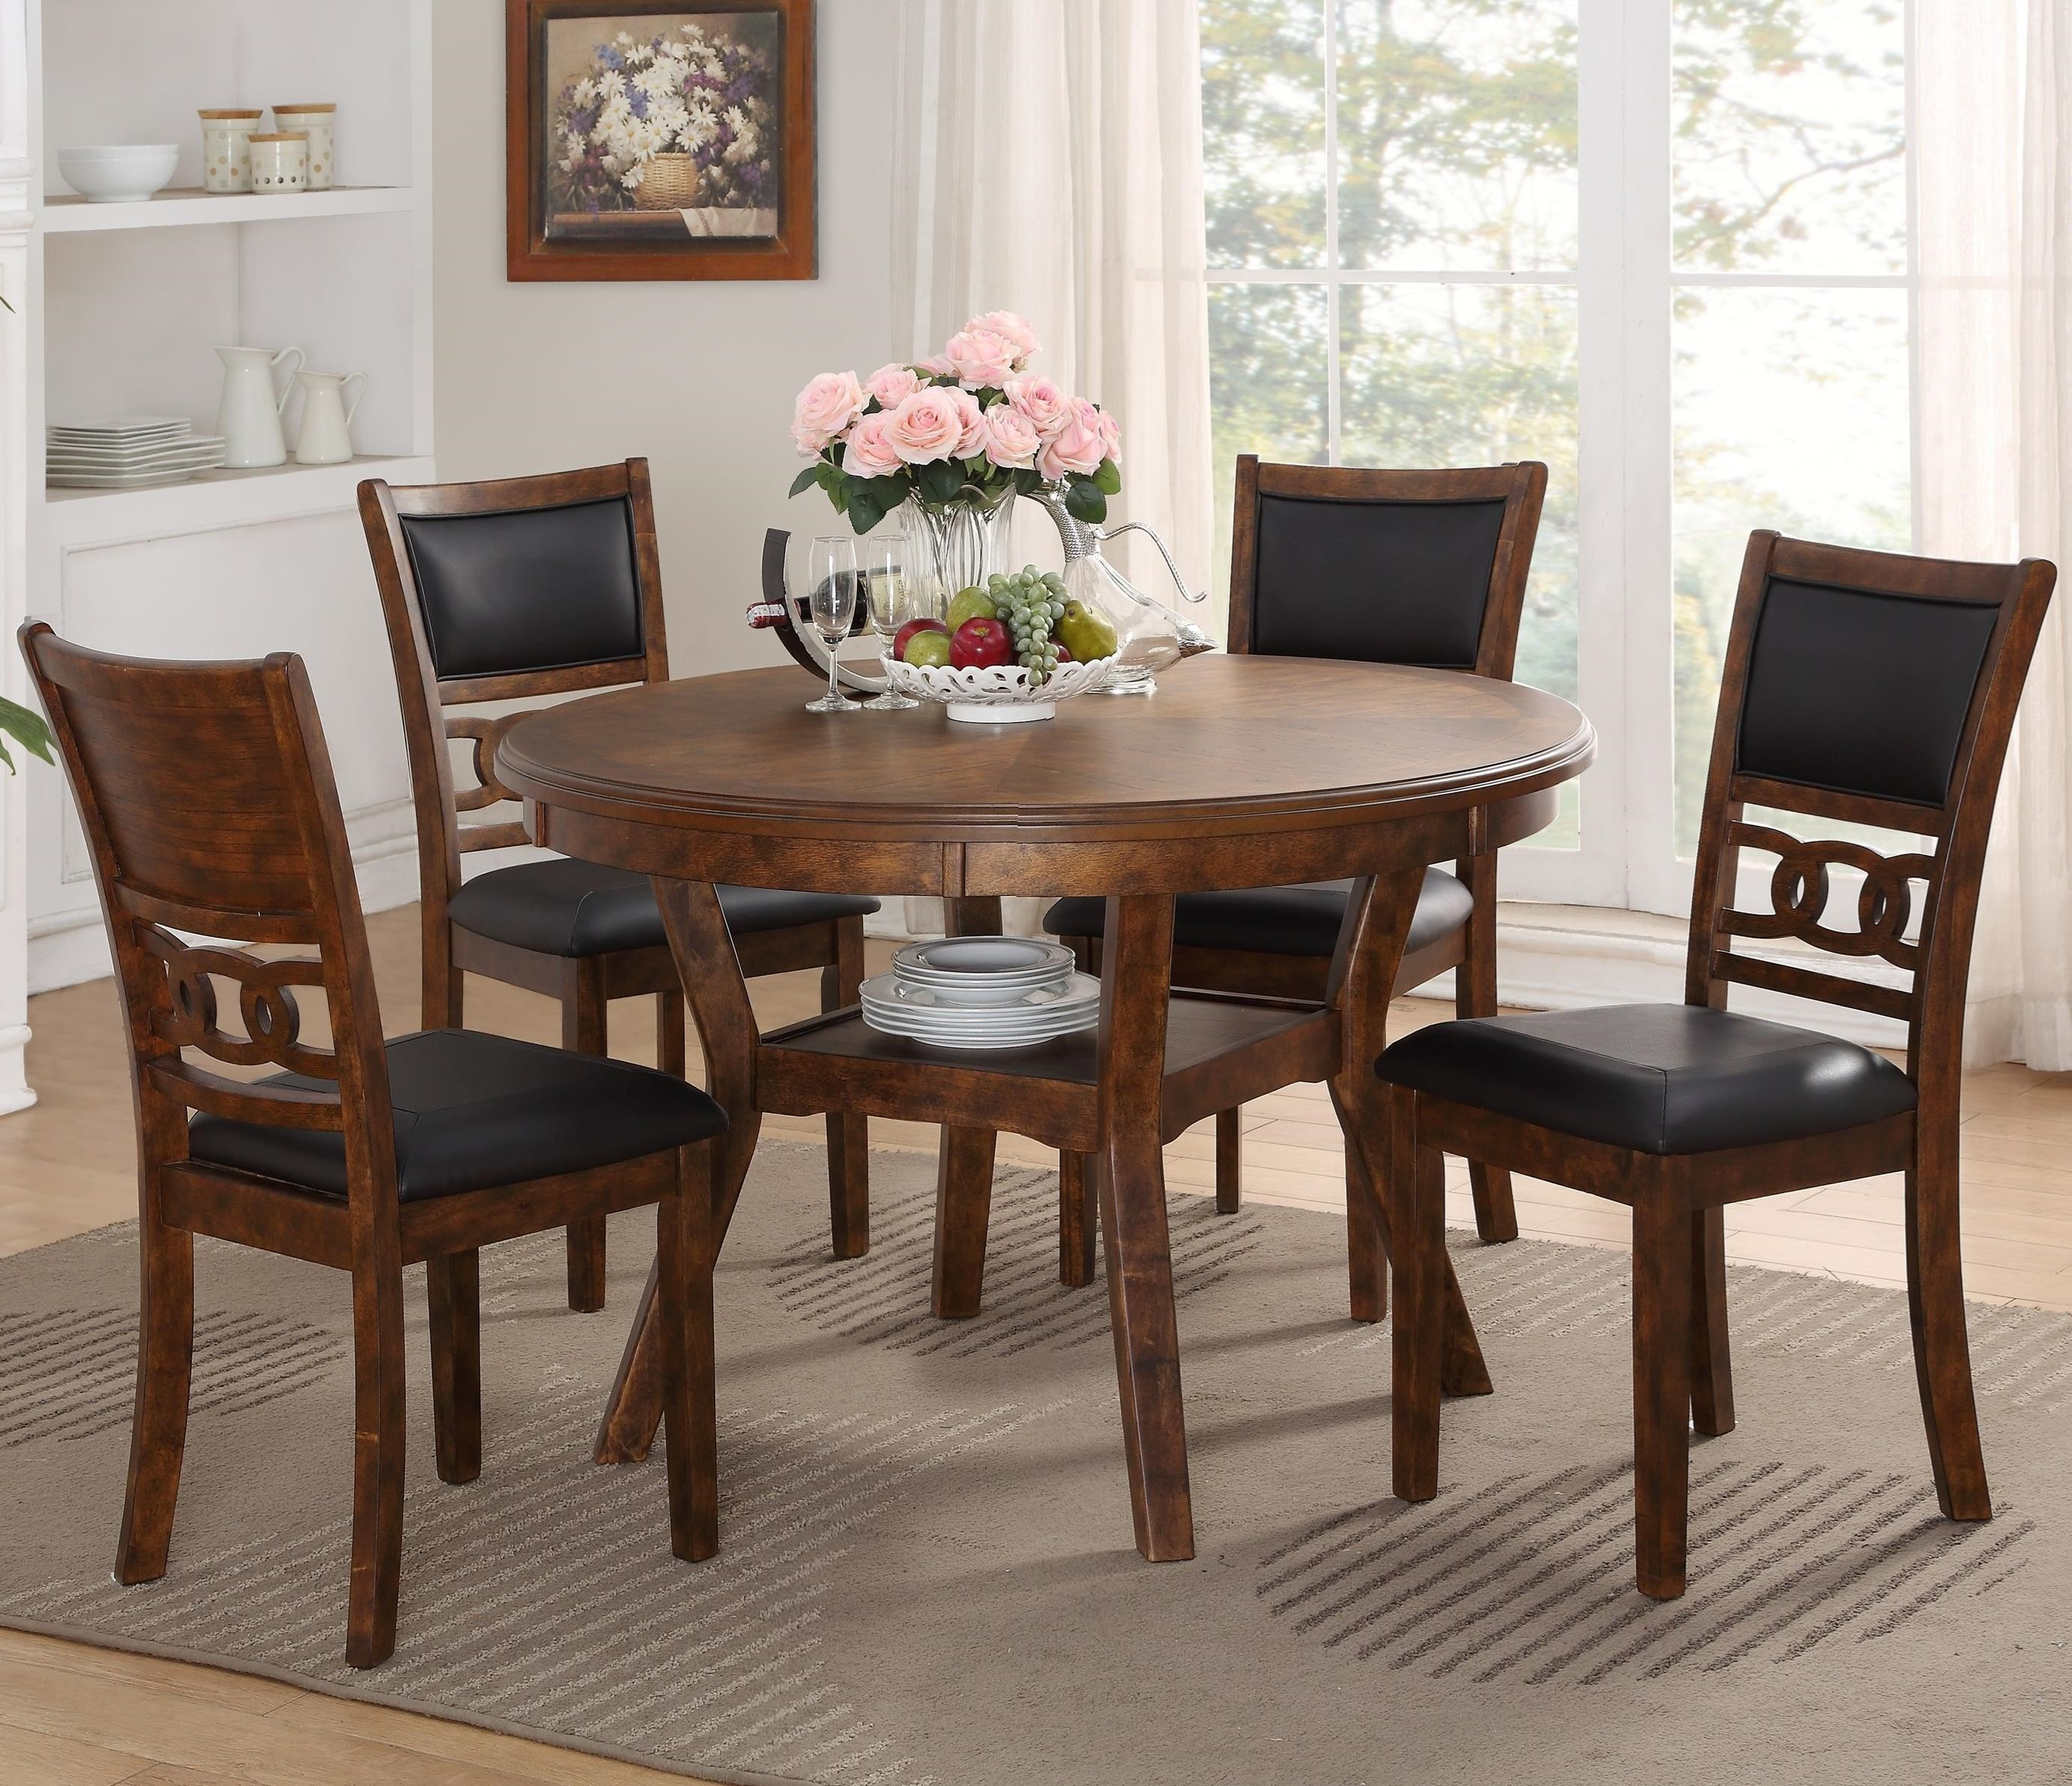 New Classic GiaDining Table And Chair Set With 4 Chairs